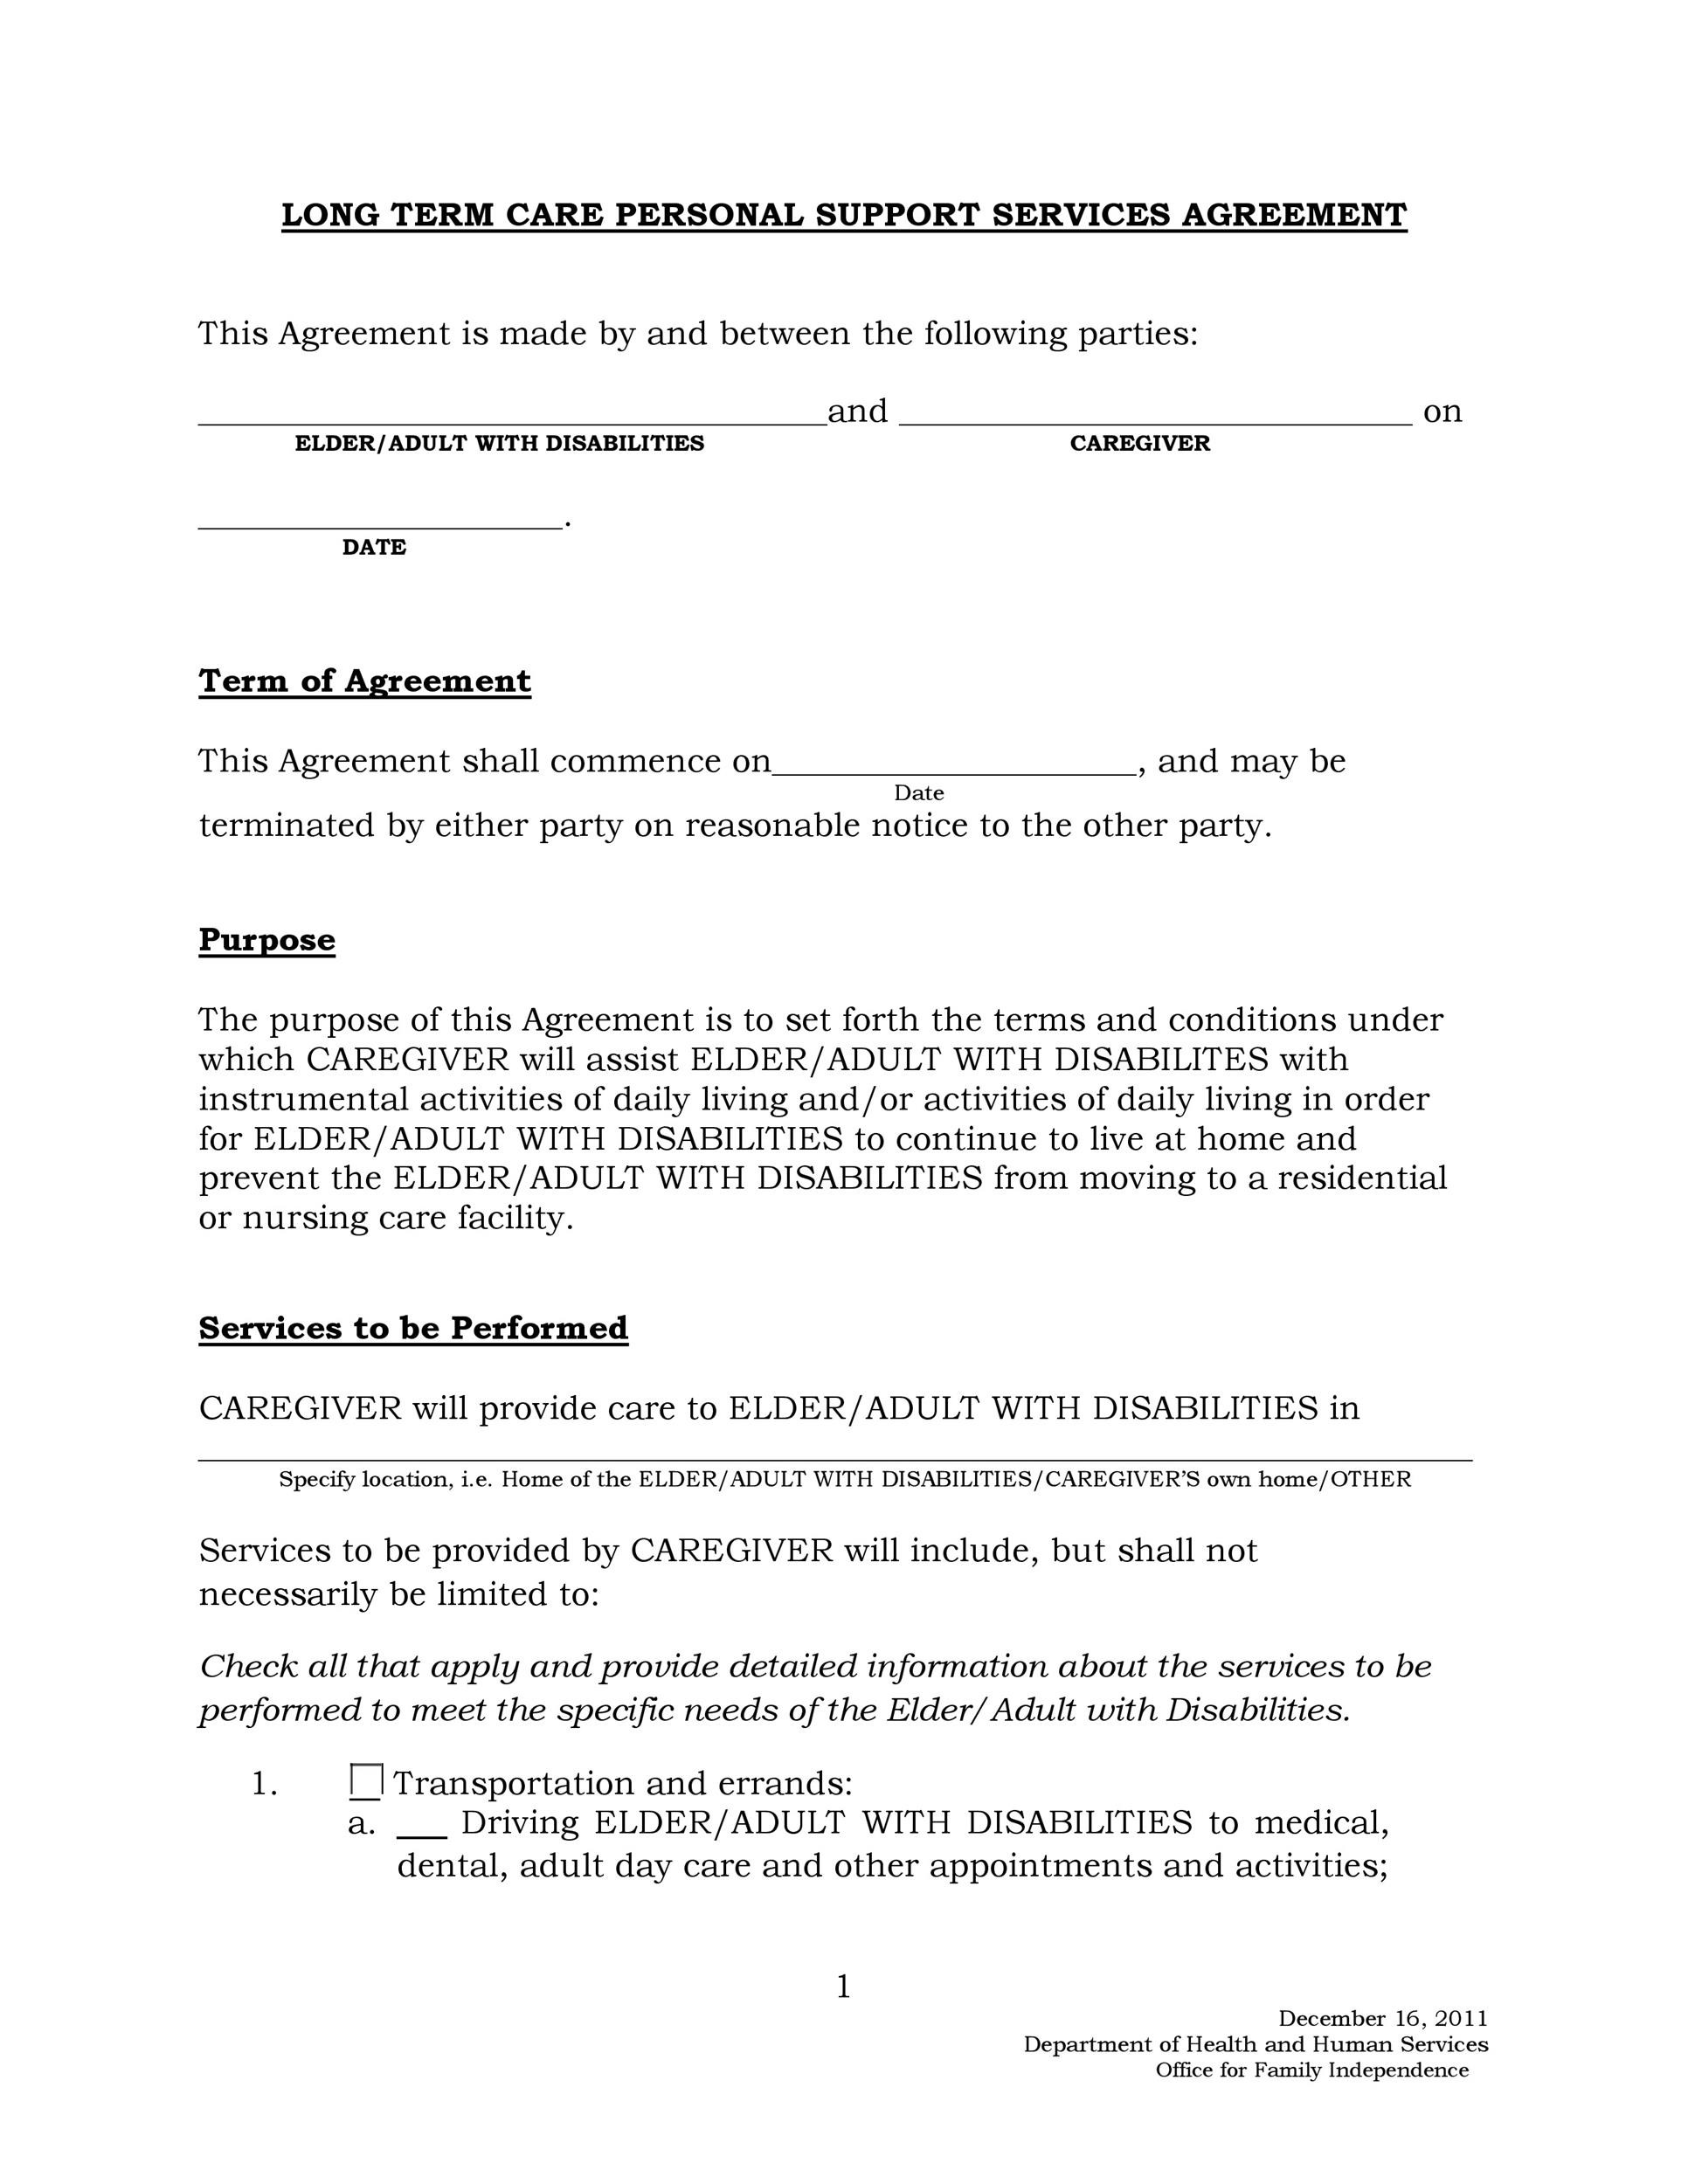 50 professional service agreement templates amp contracts